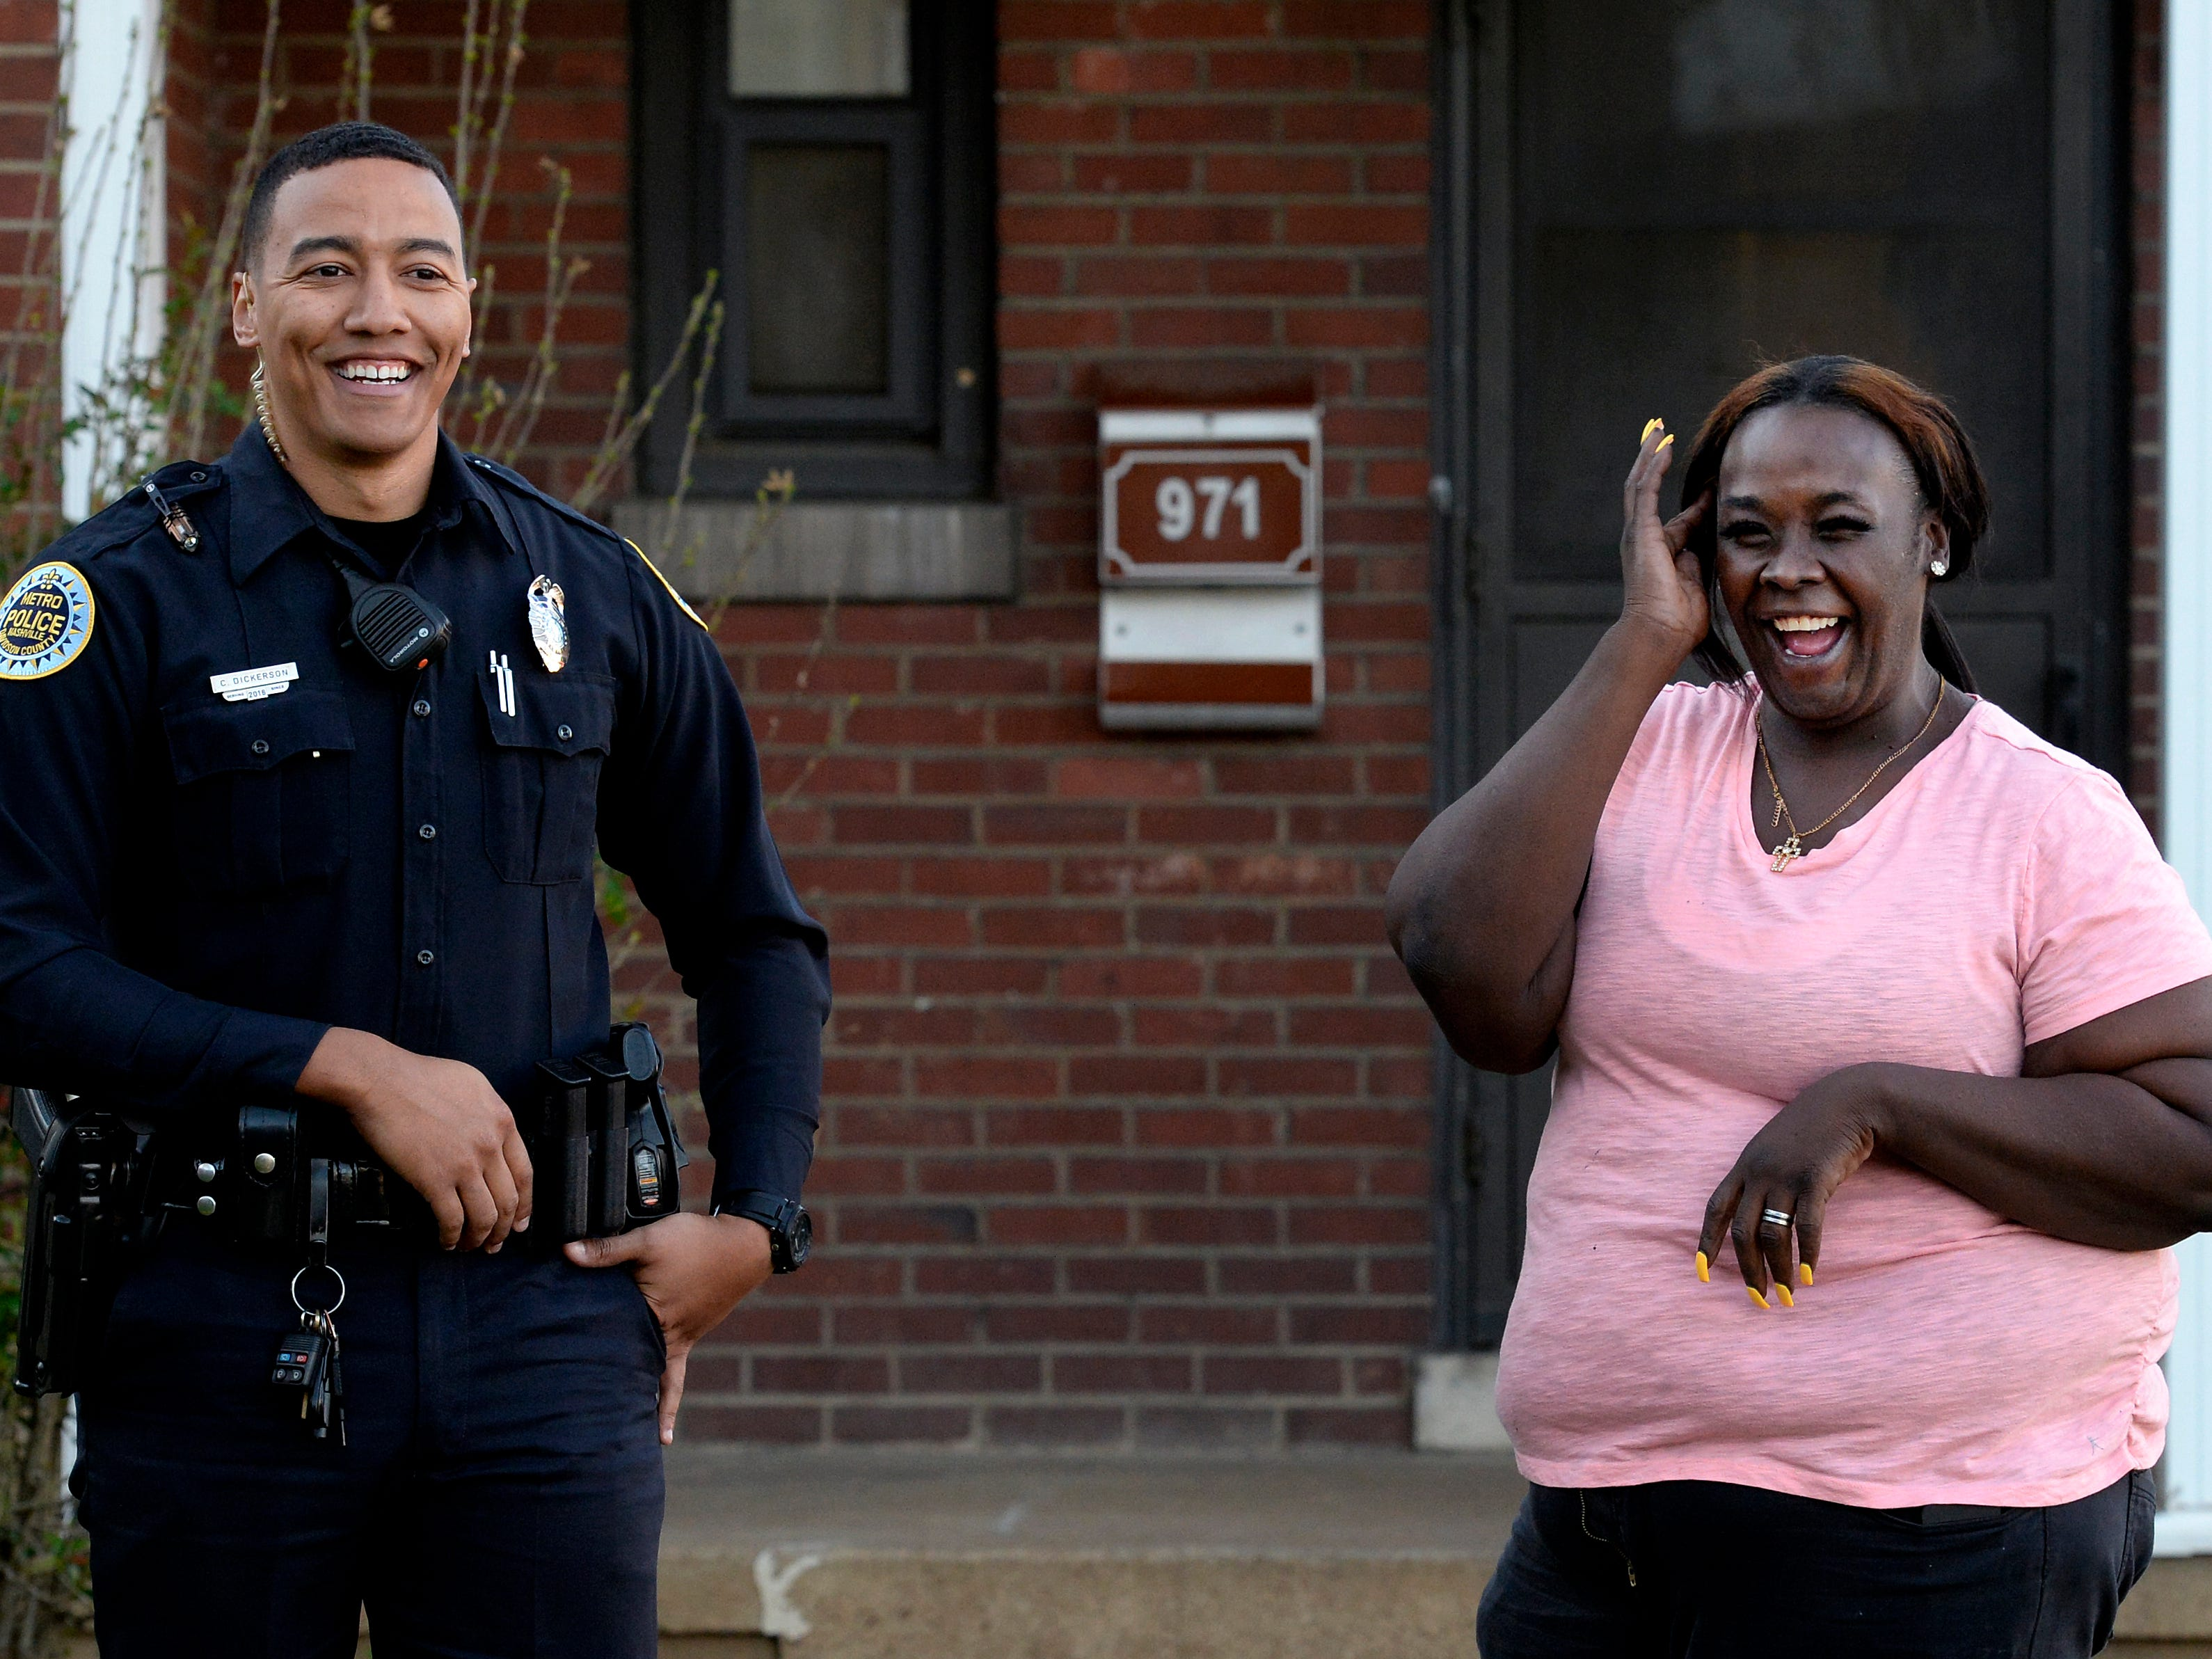 """Metro Nashville police officer Chris Dickerson talks with Tiffany Woodard outside her apartment on Blank Street on Monday, April 1, 2019 in Nashville, Tenn. During the """"fixed post"""" time of his shift, Dickerson spends about 30 minutes in different areas of the north precinct visiting with people in the neighborhood."""